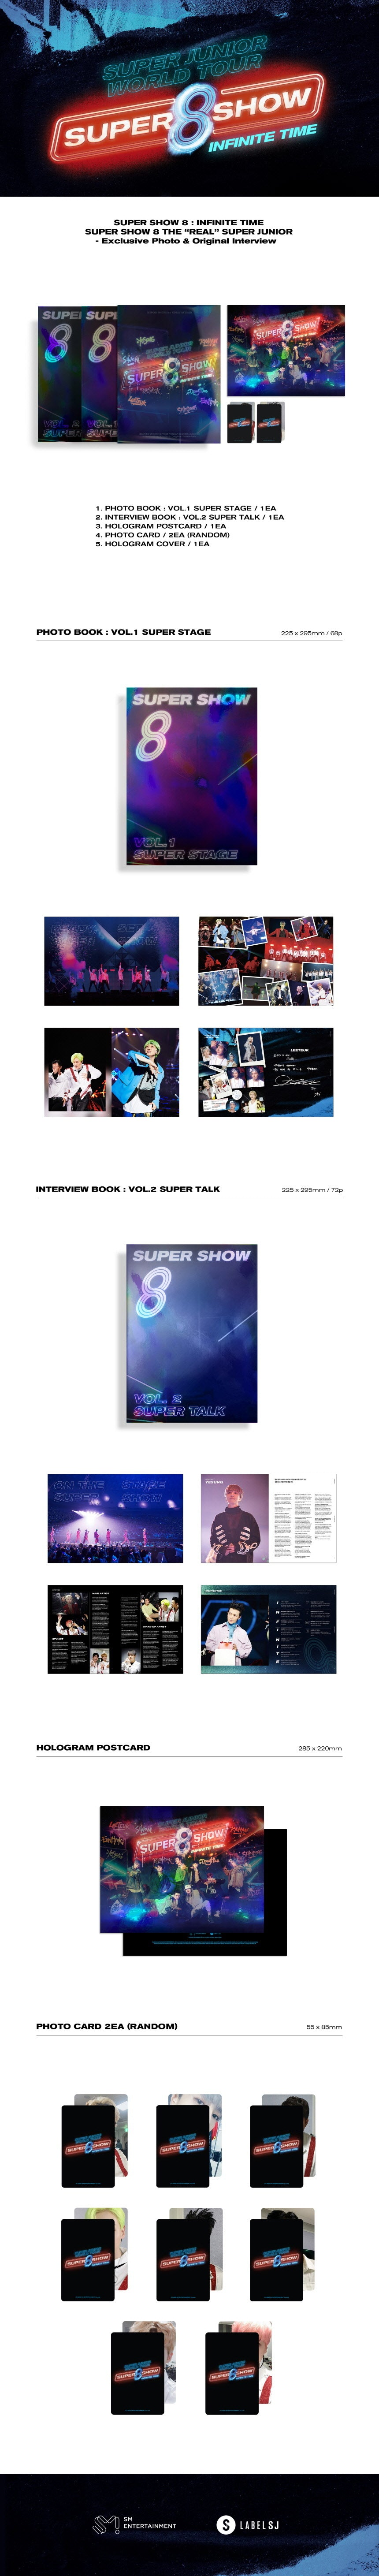 SUPER JUNIOR Super Show 8 Infinite Time DVD